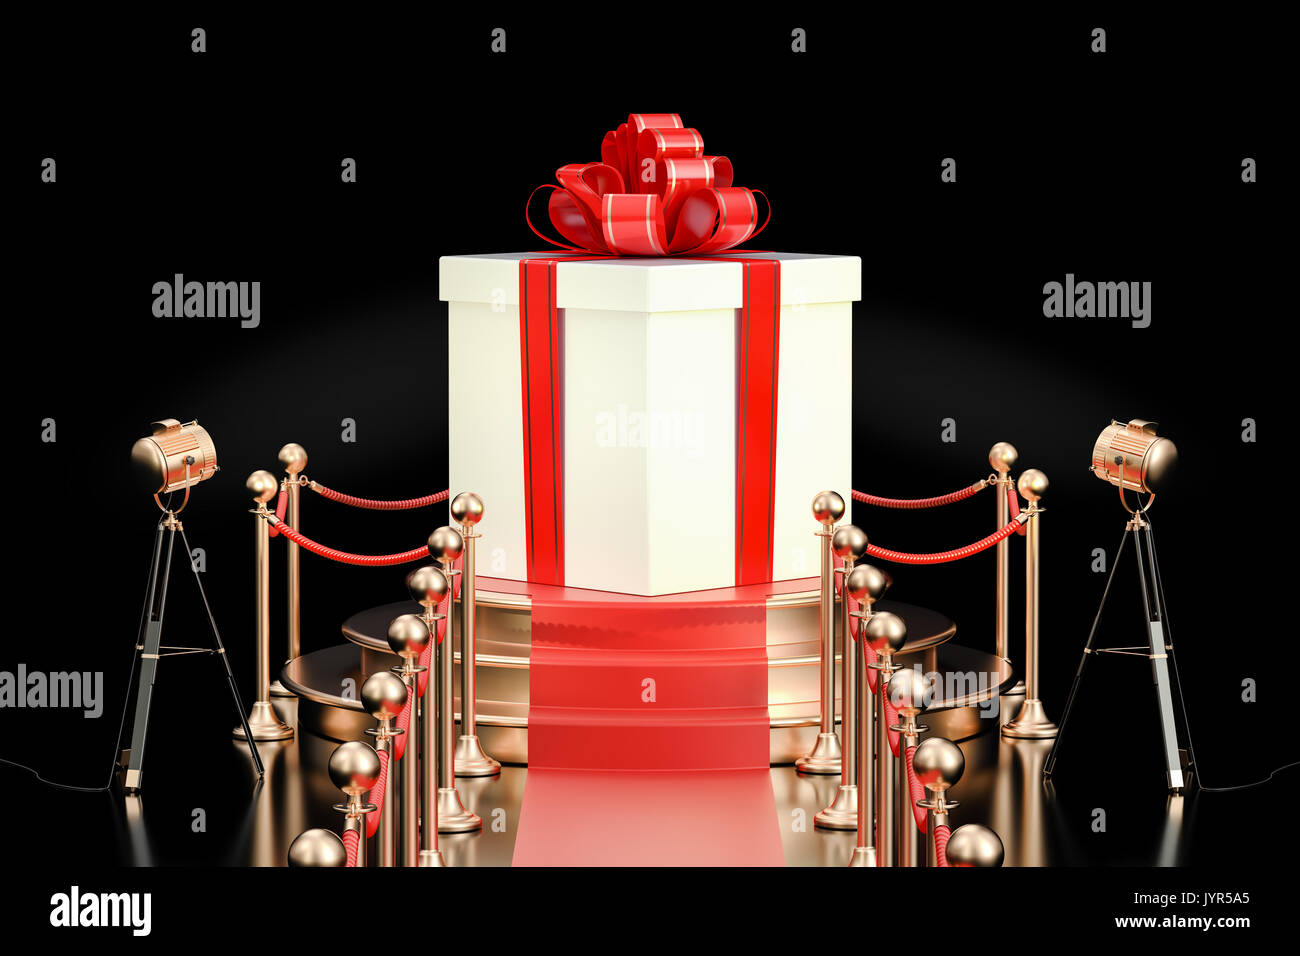 Podium with gift box, 3D rendering isolated on black background - Stock Image